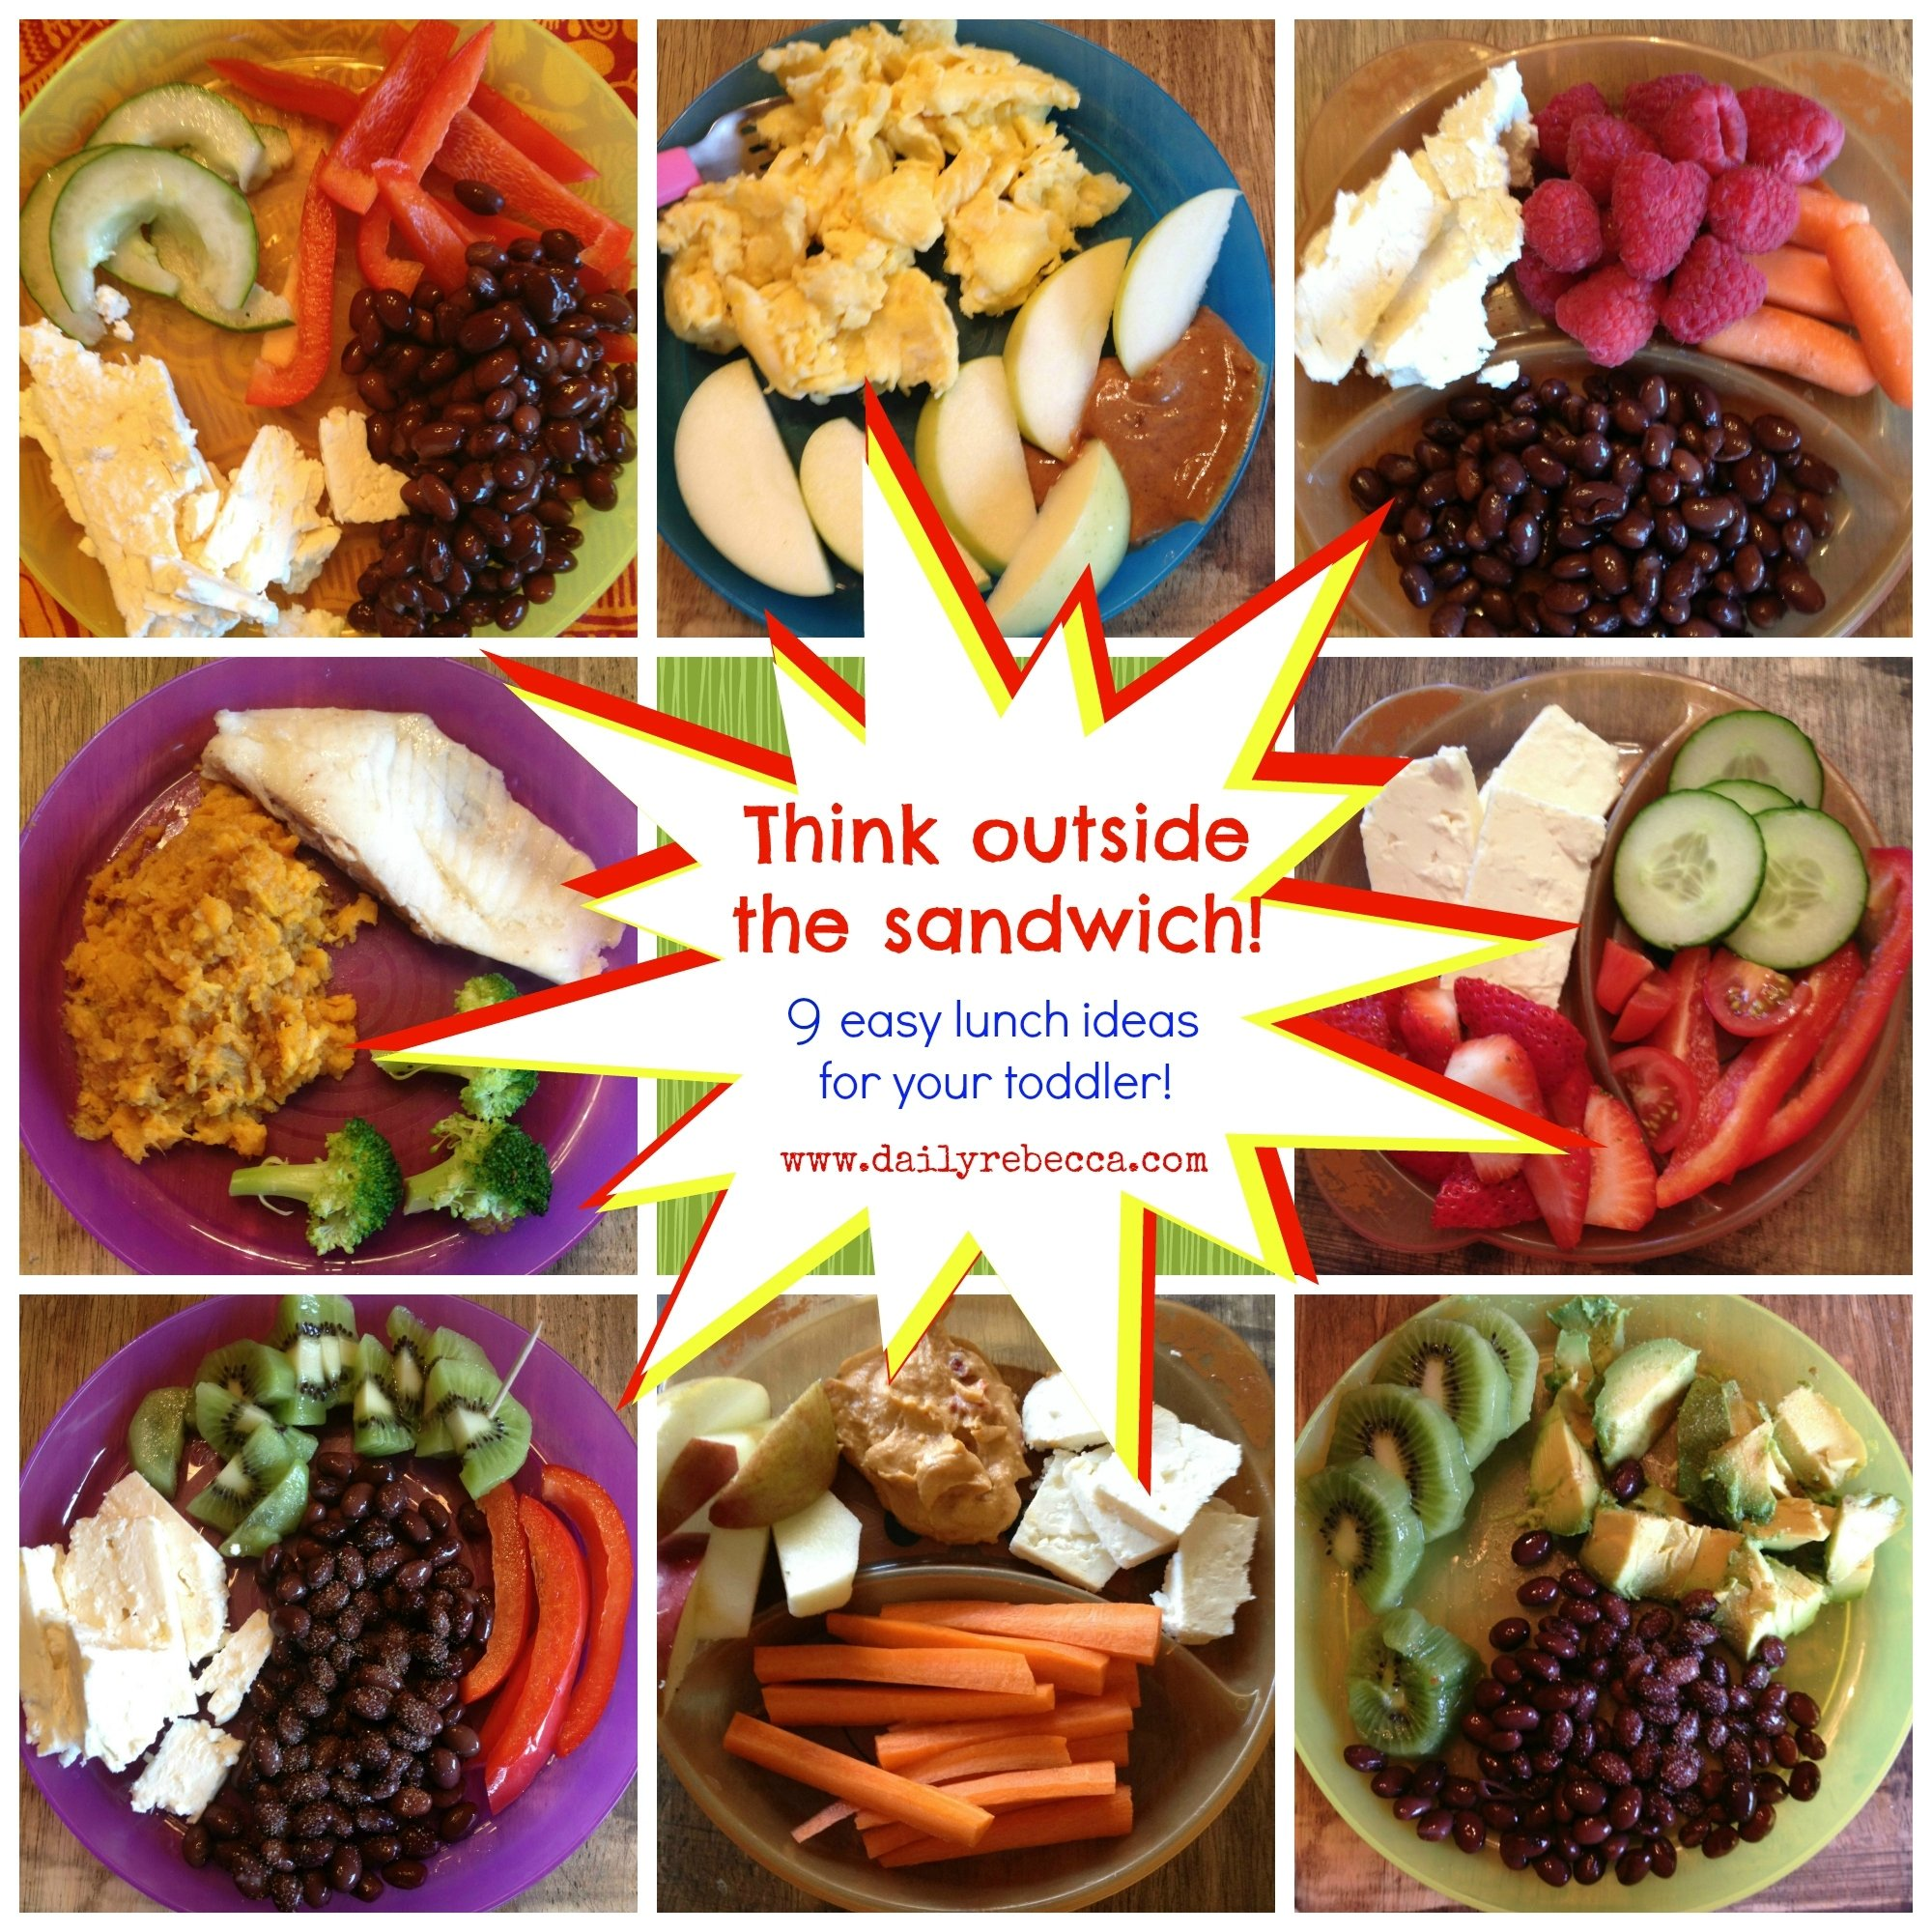 10 Attractive Healthy Lunch Ideas For Toddlers think outside the sandwich 9 easy lunch ideas for your toddler 1 2021